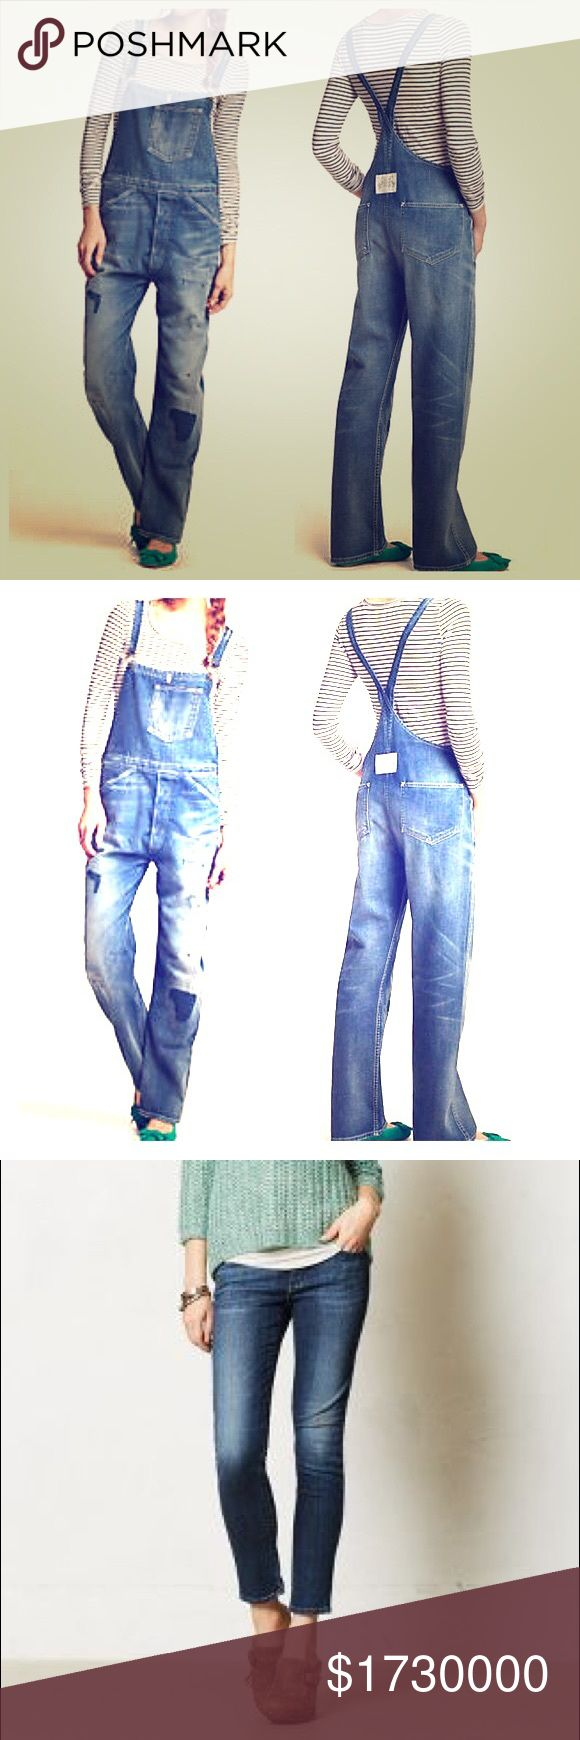 ISO •Paige •AG •Pilcro •Hudson etc. Overalls &  PAIGE - ADRIANO GOLDSCHMIED - PILCRO- HUDSON Denim Overalls & Denim Skinny Jeans. ISO-not for sale. Looking for both of these things in sizes 29-30 ankle/petite lengths. I want oversized overalls, so the size can be larger and brand doesn't matter necessarily for the overalls. And as for the skinny jeans, I'm ISO size 29 or 30 petite length by Paige, A.G. & also like Pilcro & Hudson in various medium/darker washes & darker various fabric like…